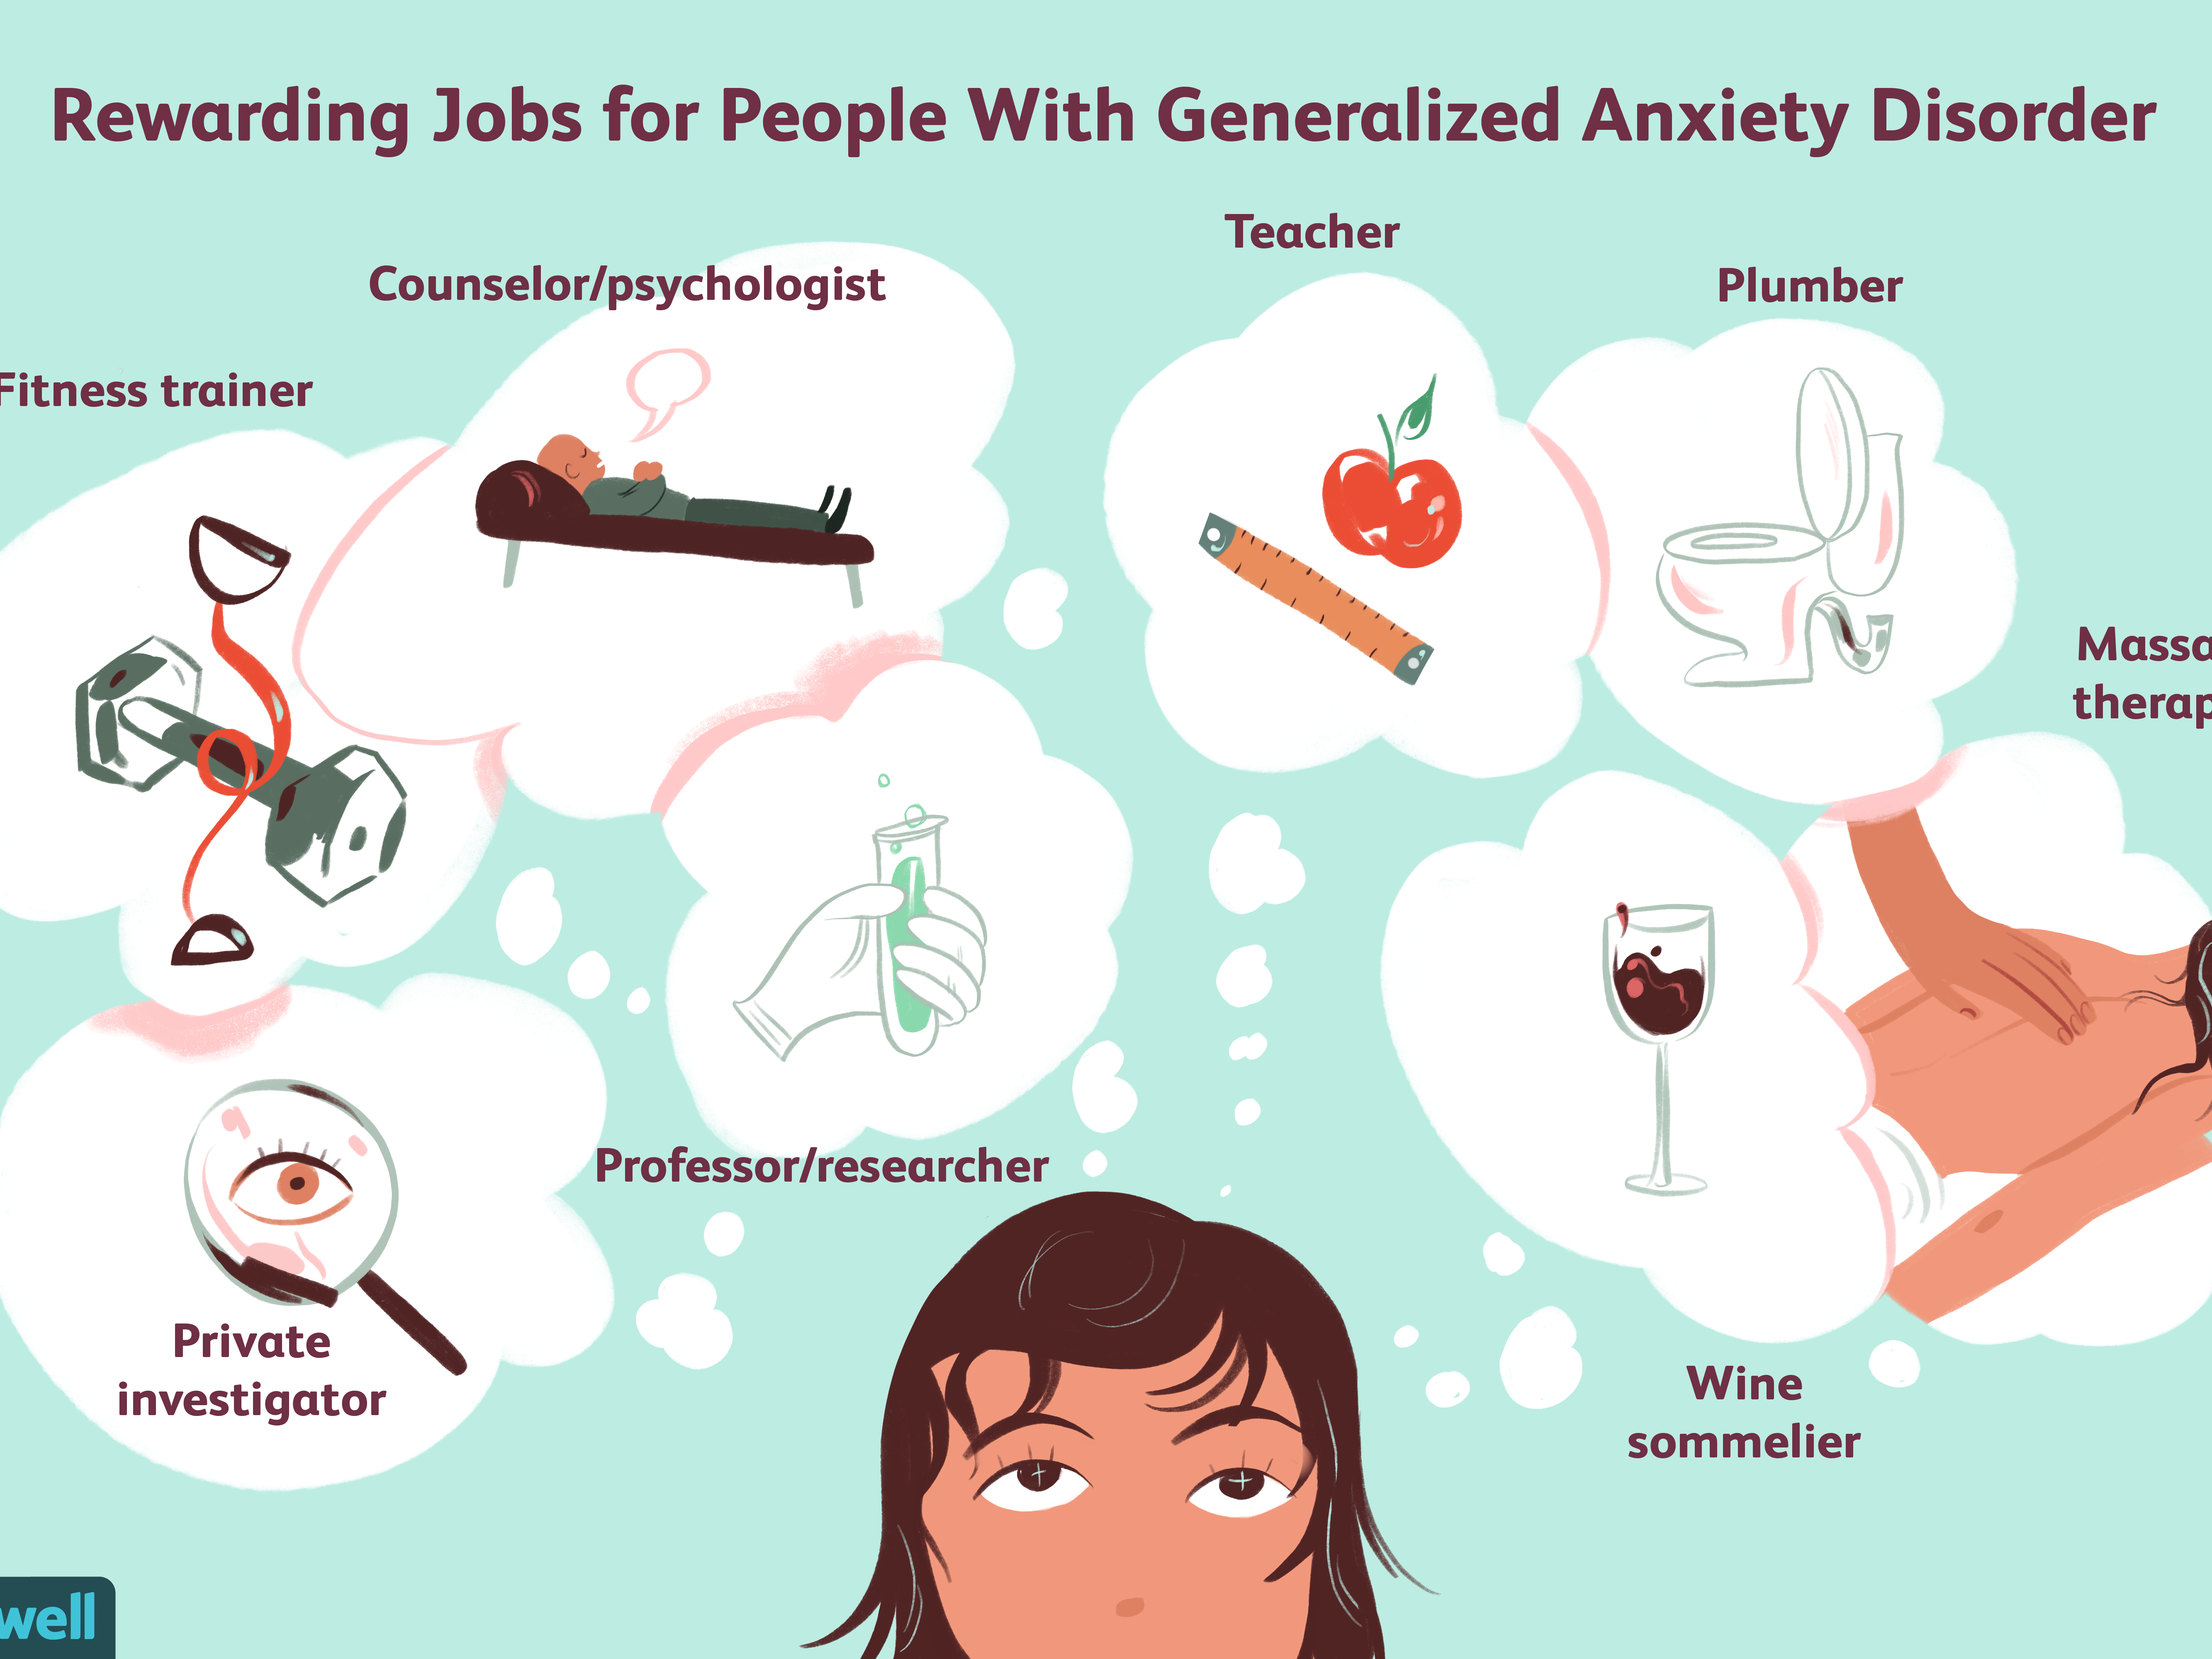 Jobs for People With Generalized Anxiety Disorder